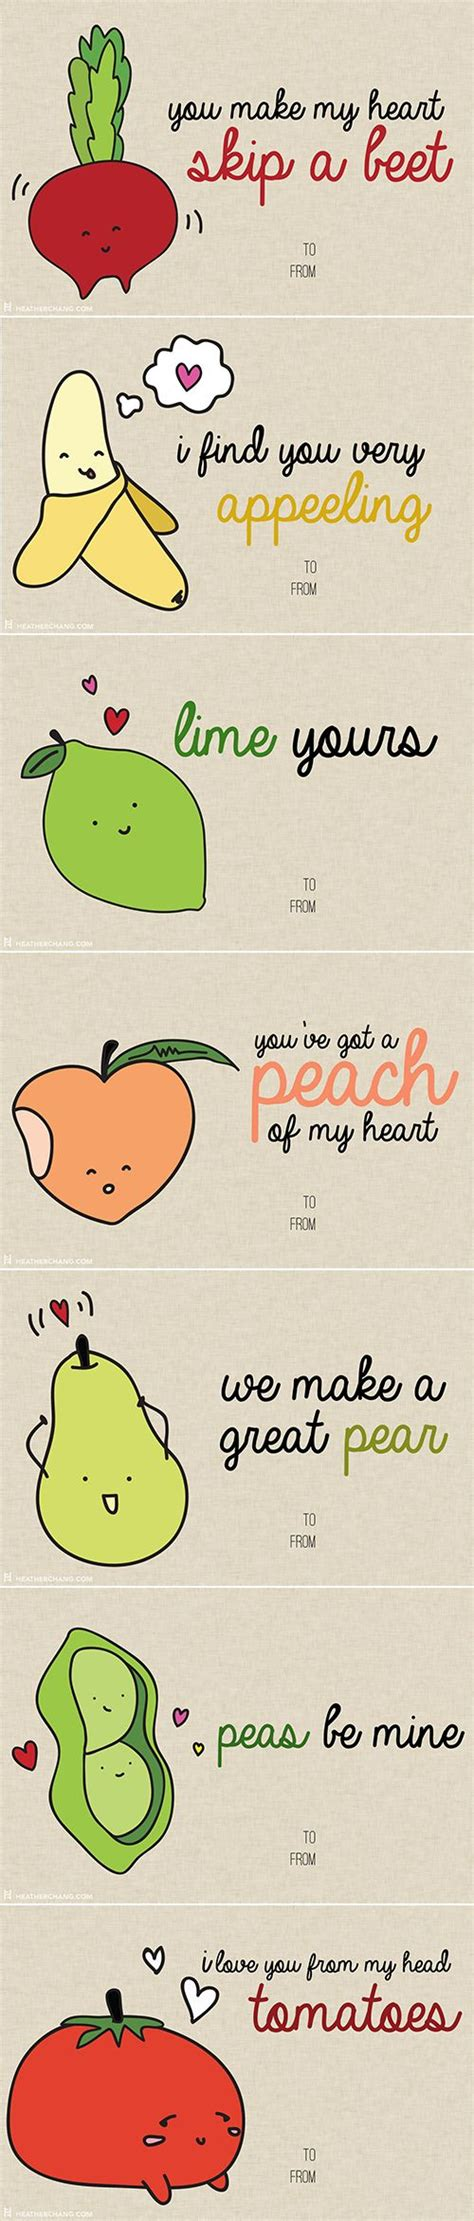 corny valentines day jokes 10 printable v day cards with food puns so bad they re